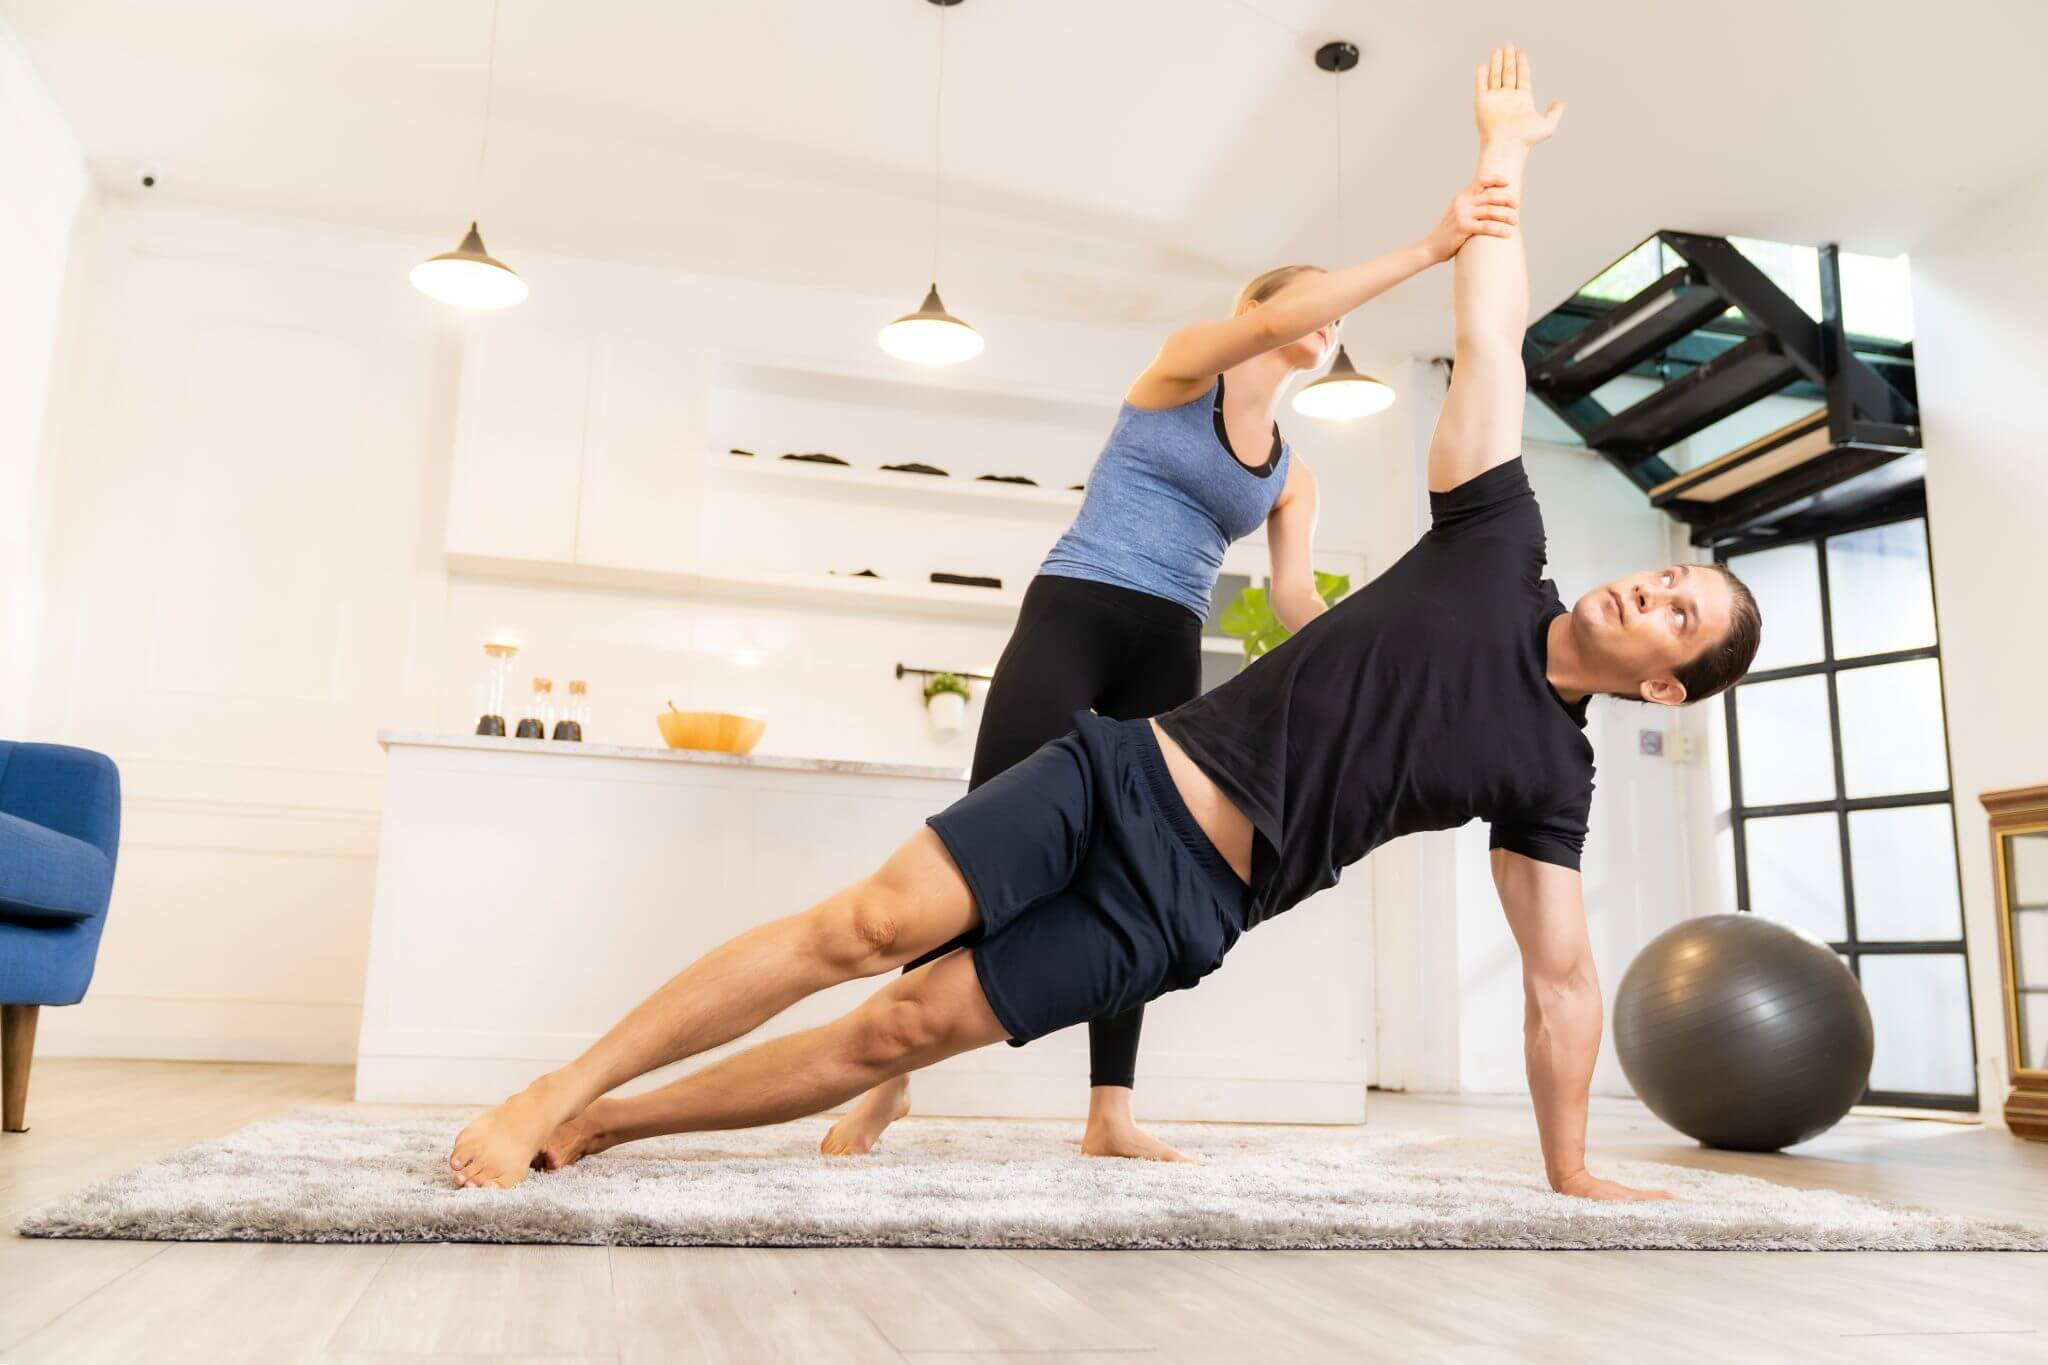 yoga training at home with personal trainer